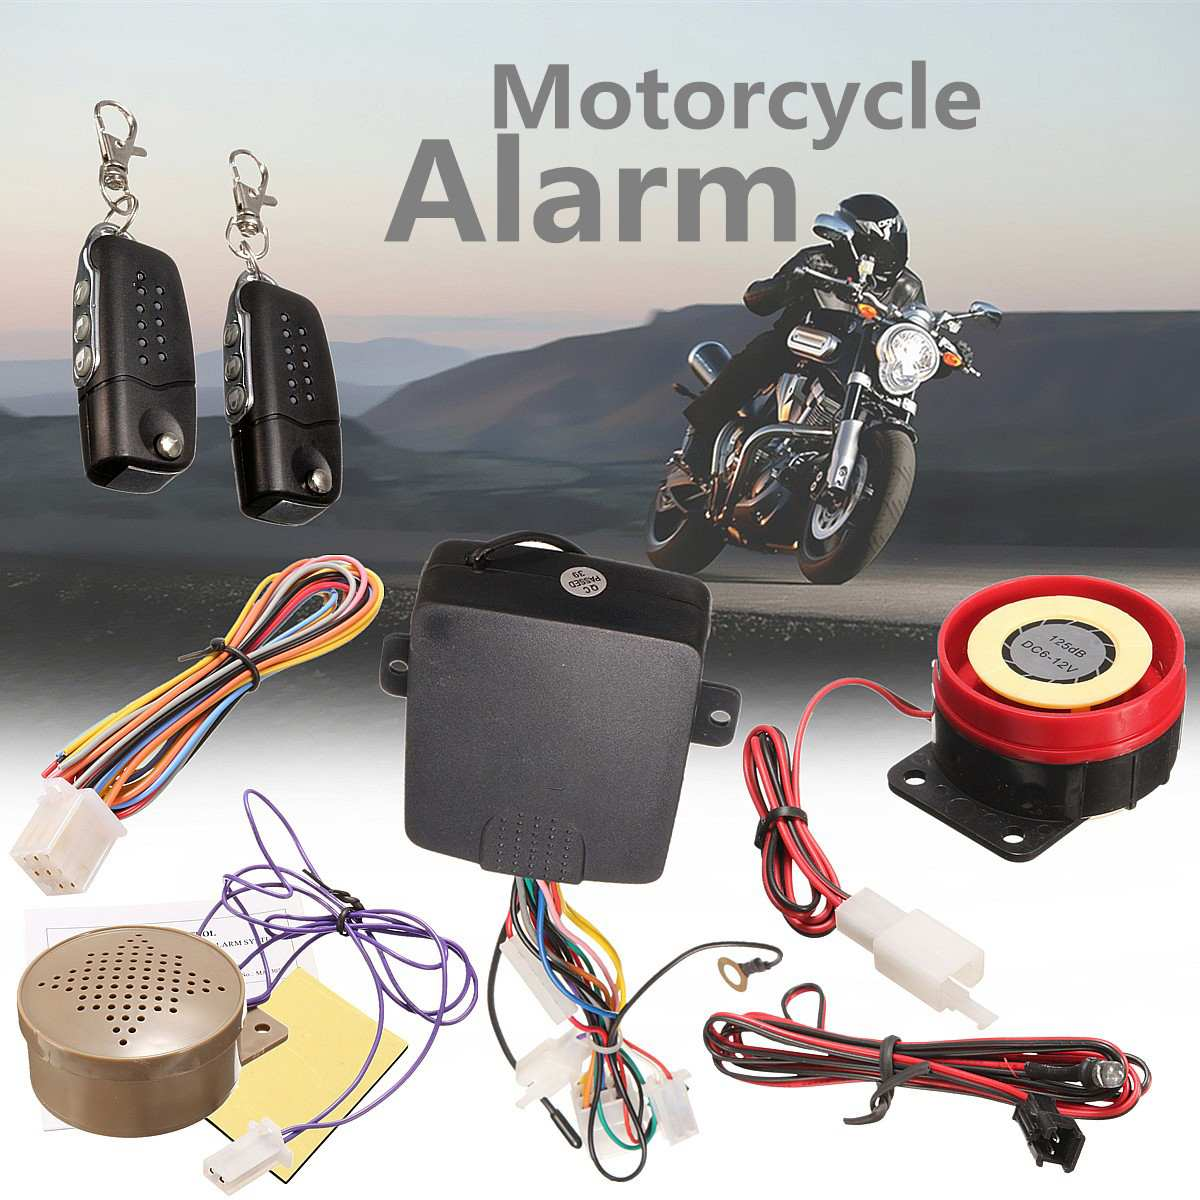 12v 125db Motorcycle Theft Protection Motorcycle Motor Bike Security Alarm System With Remote Control For Motorcycle Motorbike